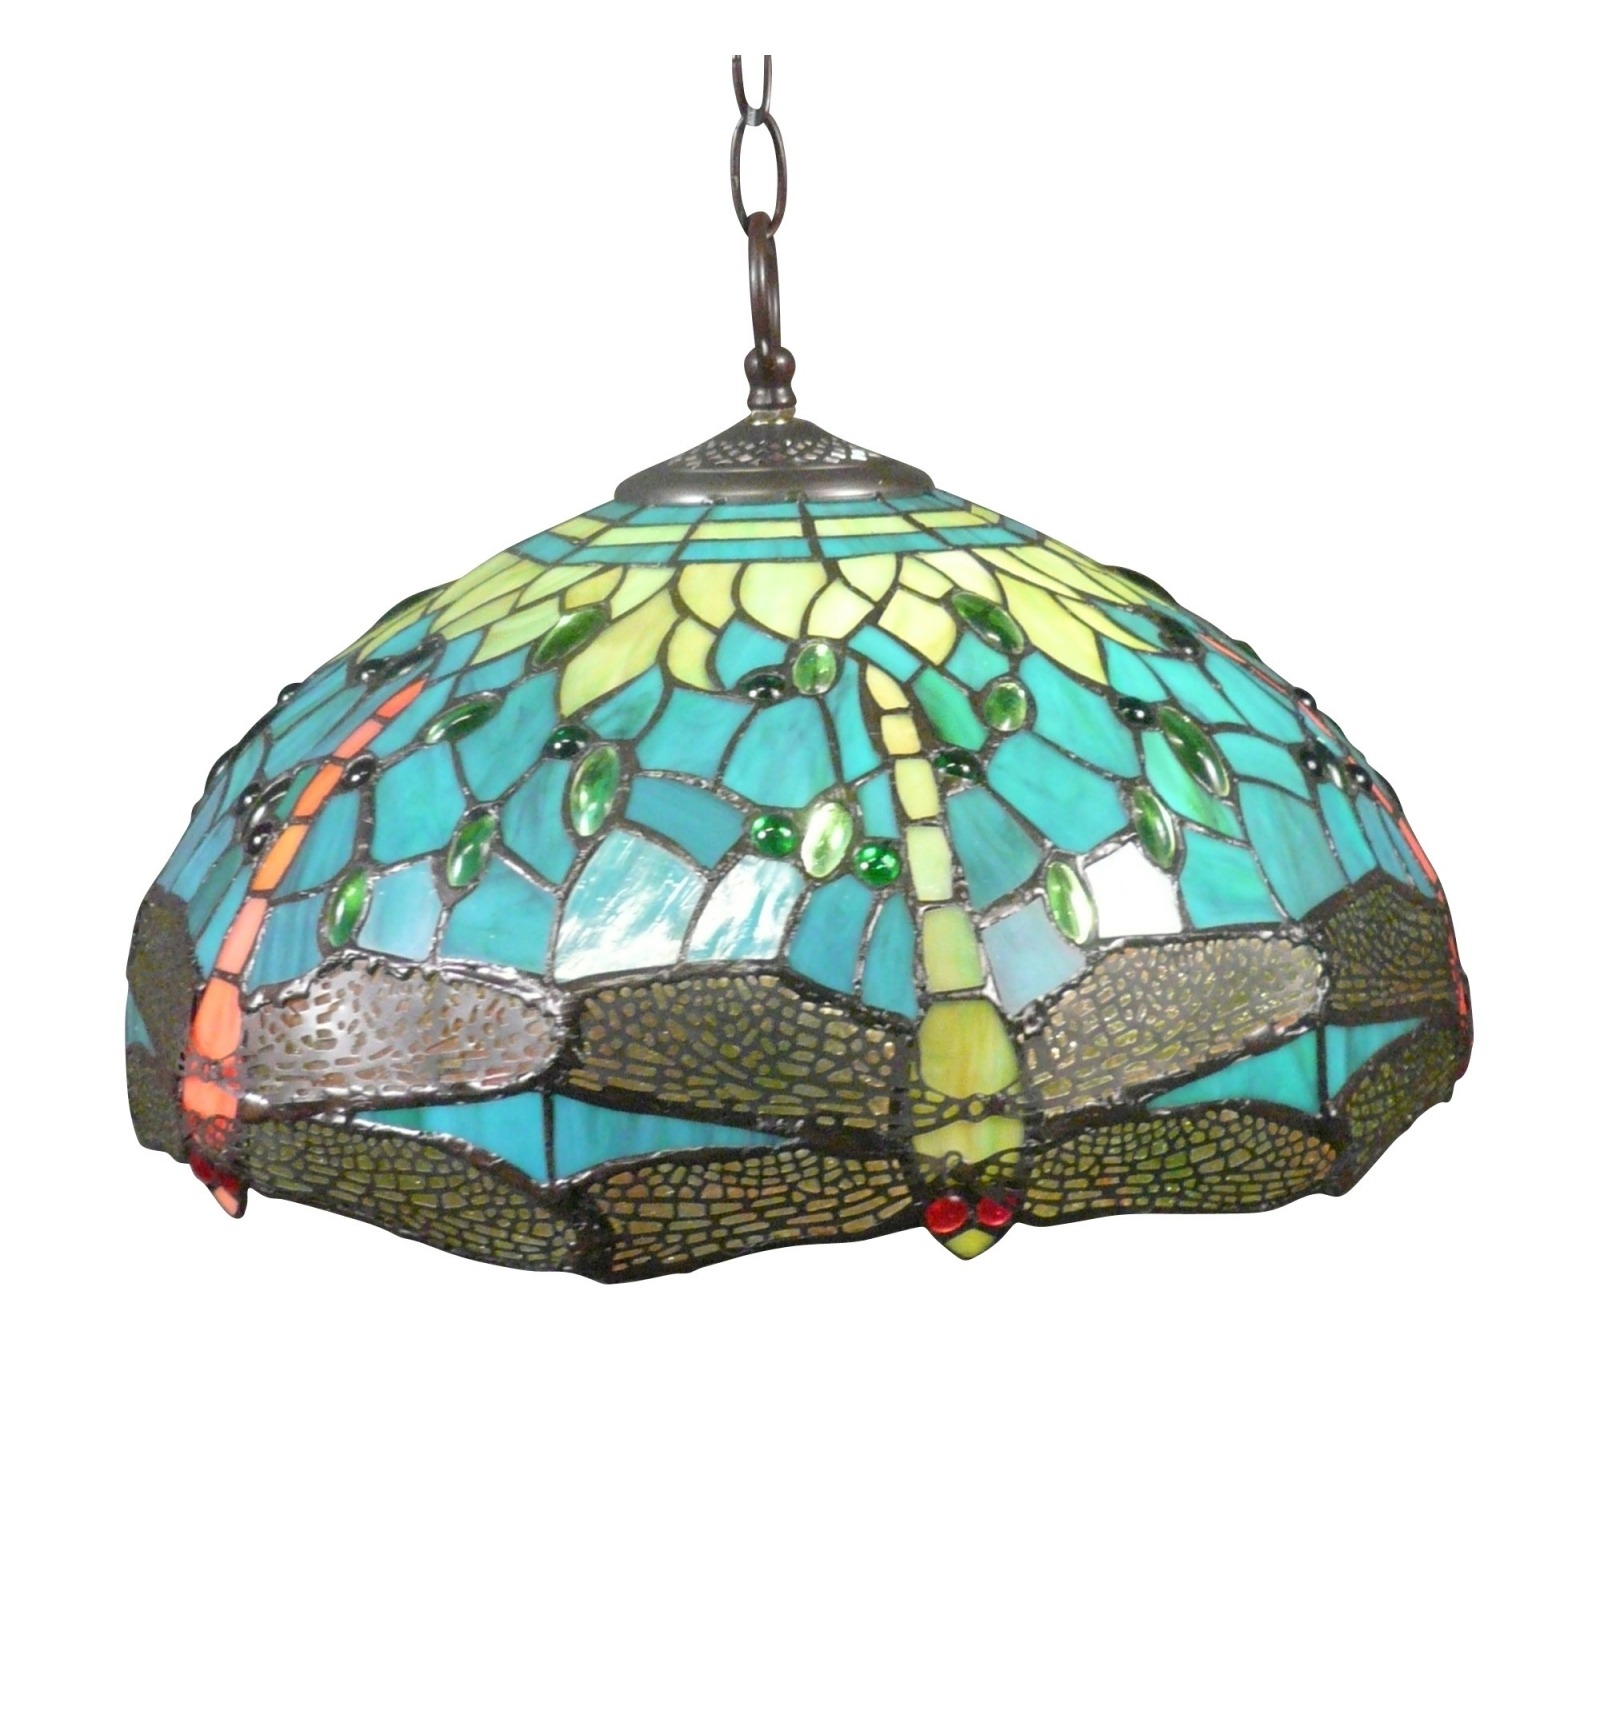 expensive lights vintage menards ceiling chandelier lowes room antique stained mount dining light tiffany of glass fixtures ceilings chandeliers most hanging lamps full lighting pendant size flush